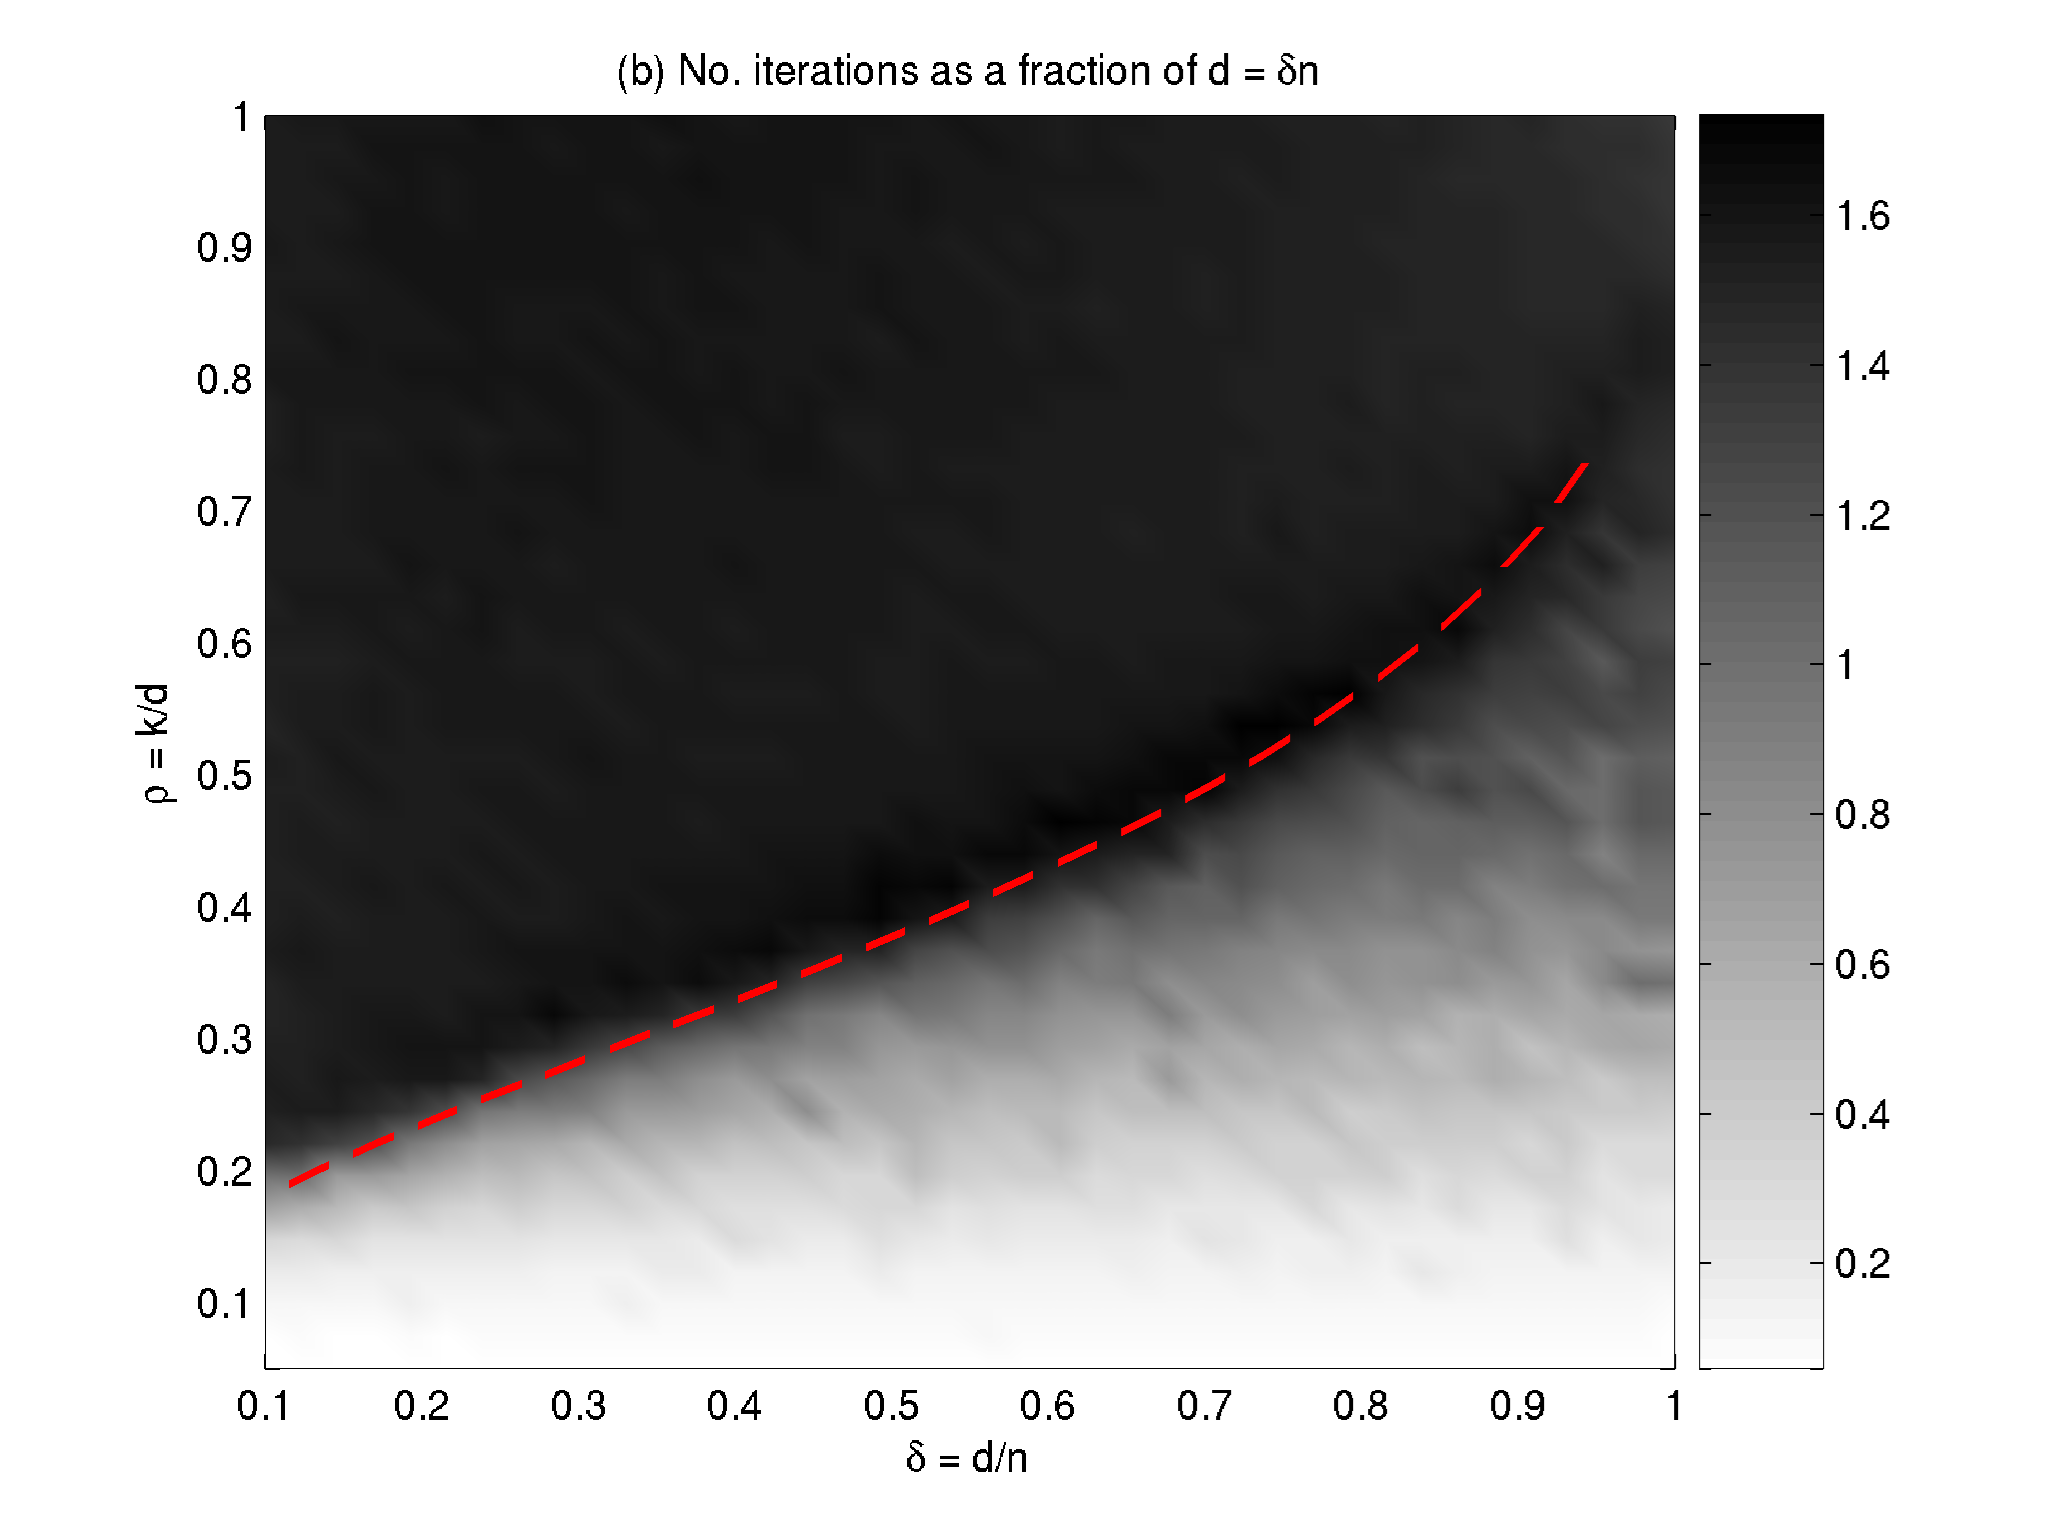 k-step region. When (d, n, k) are such that the k-step property holds, then Homotopy successfully recovers the sparse solution in k steps, as suggested by Empirical Findings 1 and. Otherwise;.